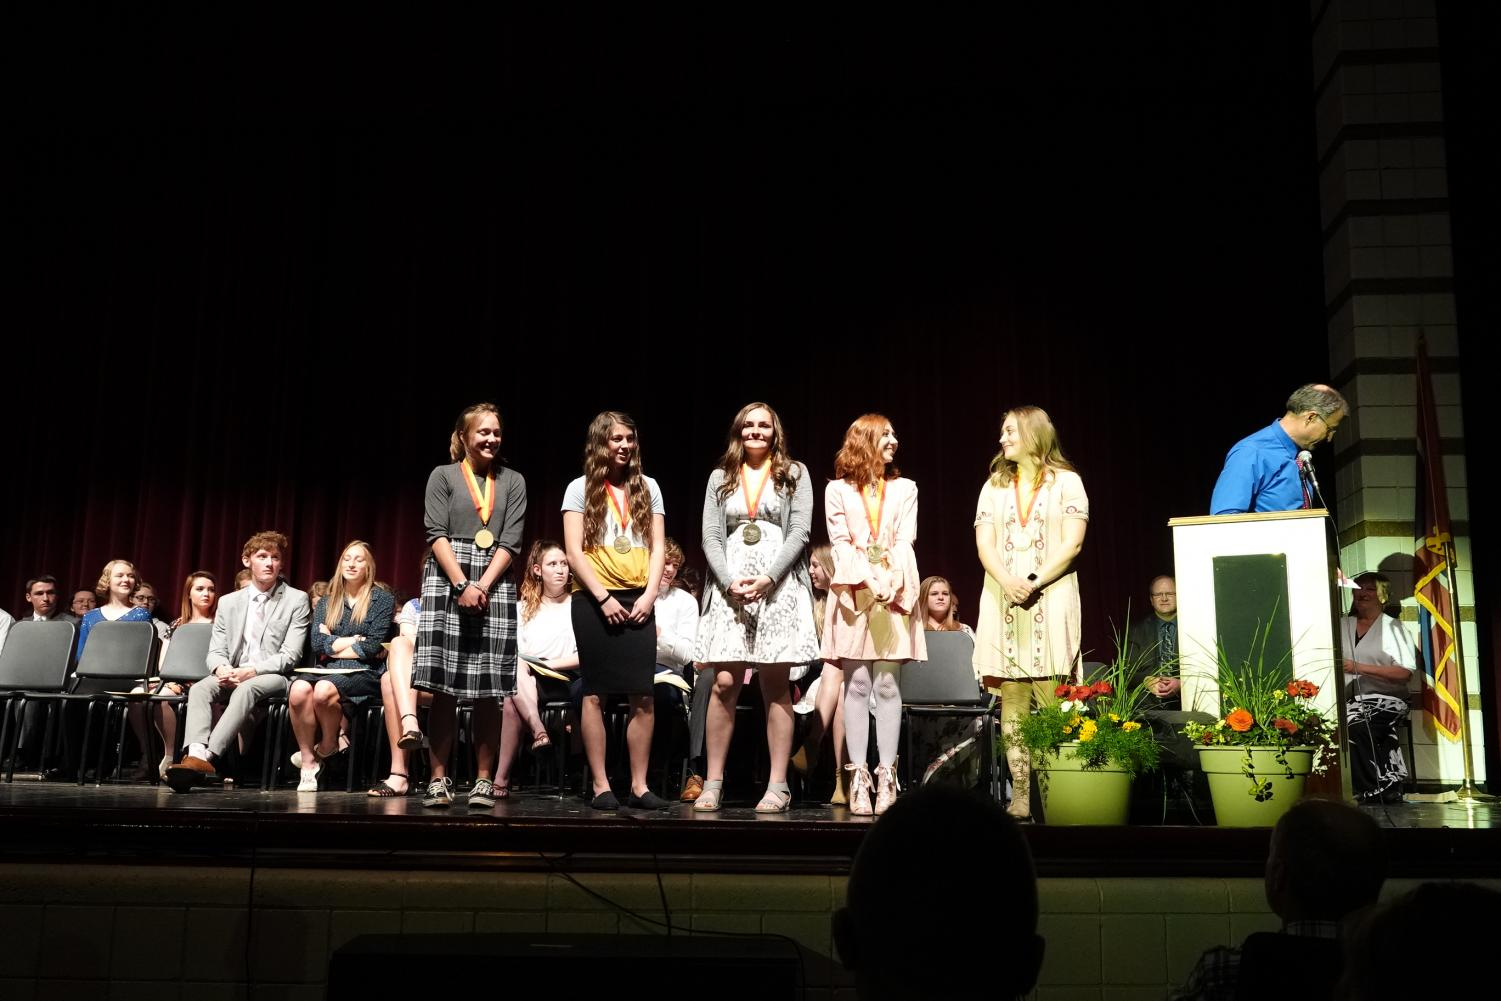 THE GREATS: The honor students of SVHS accept their titles with grace and smiles.